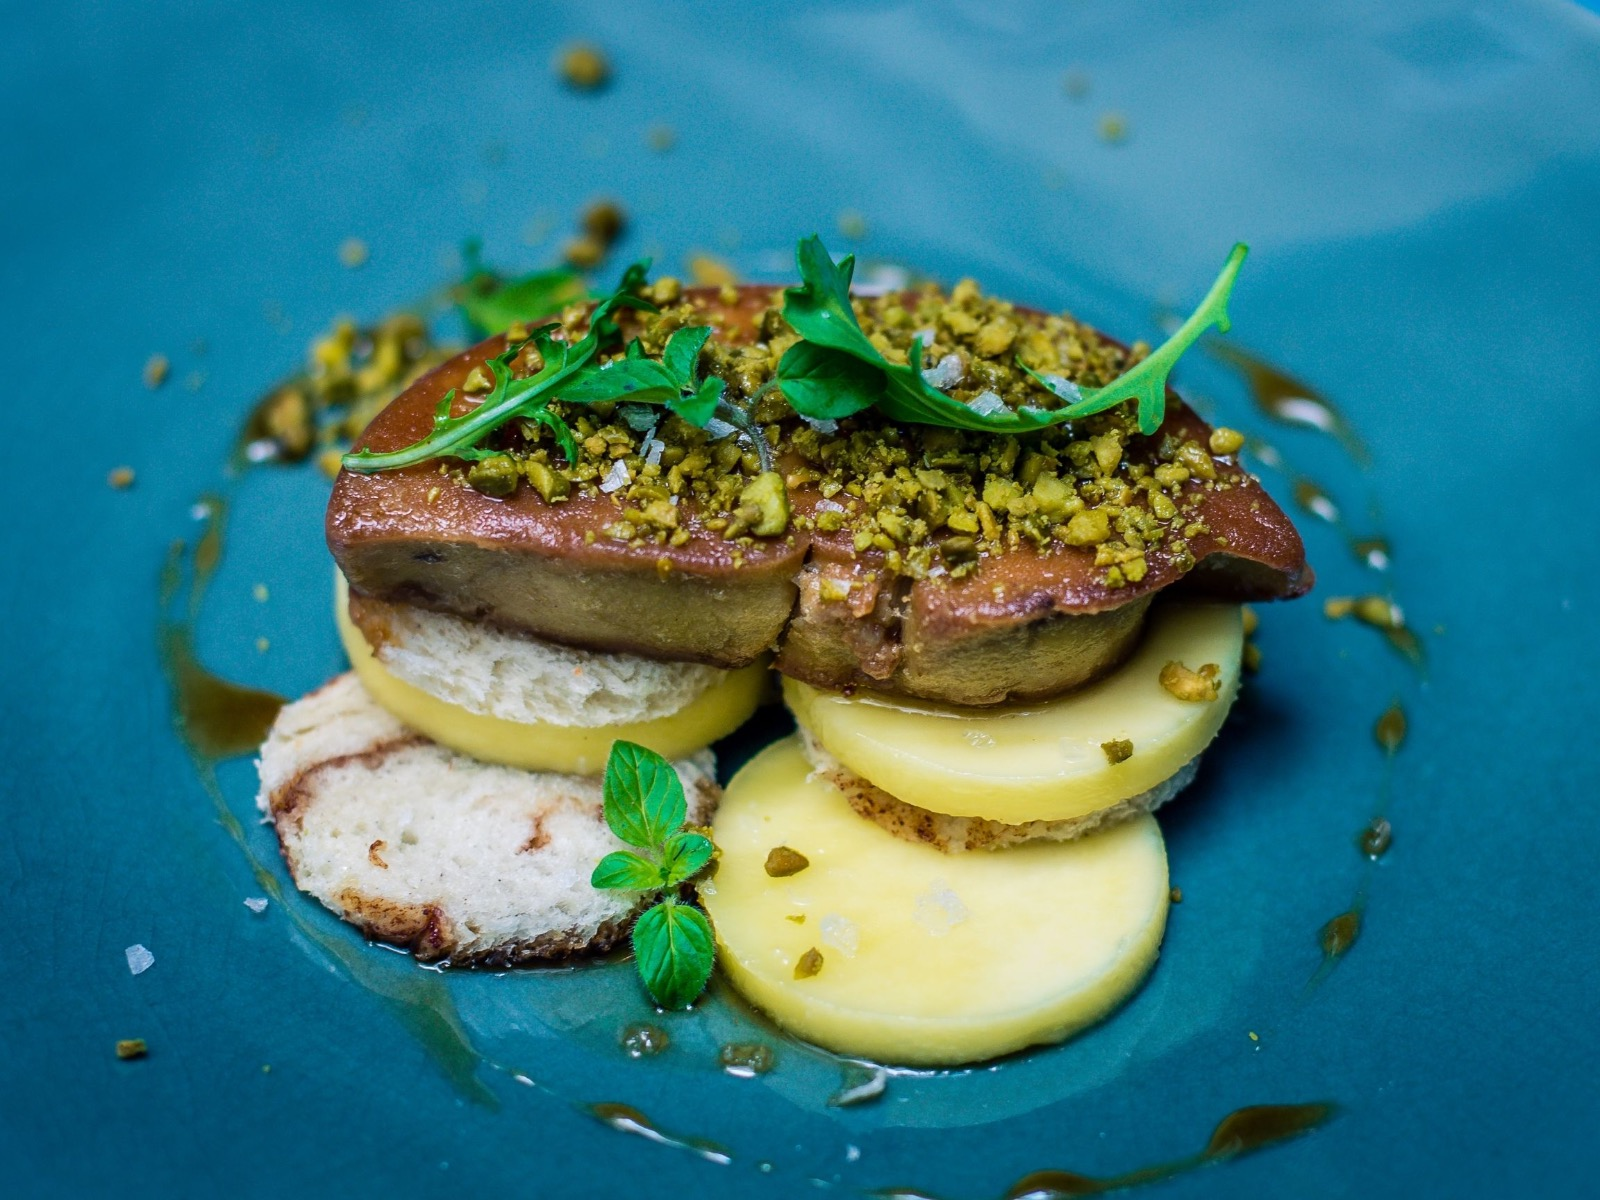 Foie Gras The Delicacy That Originated In Ancient Egypt - Beck & Bulow